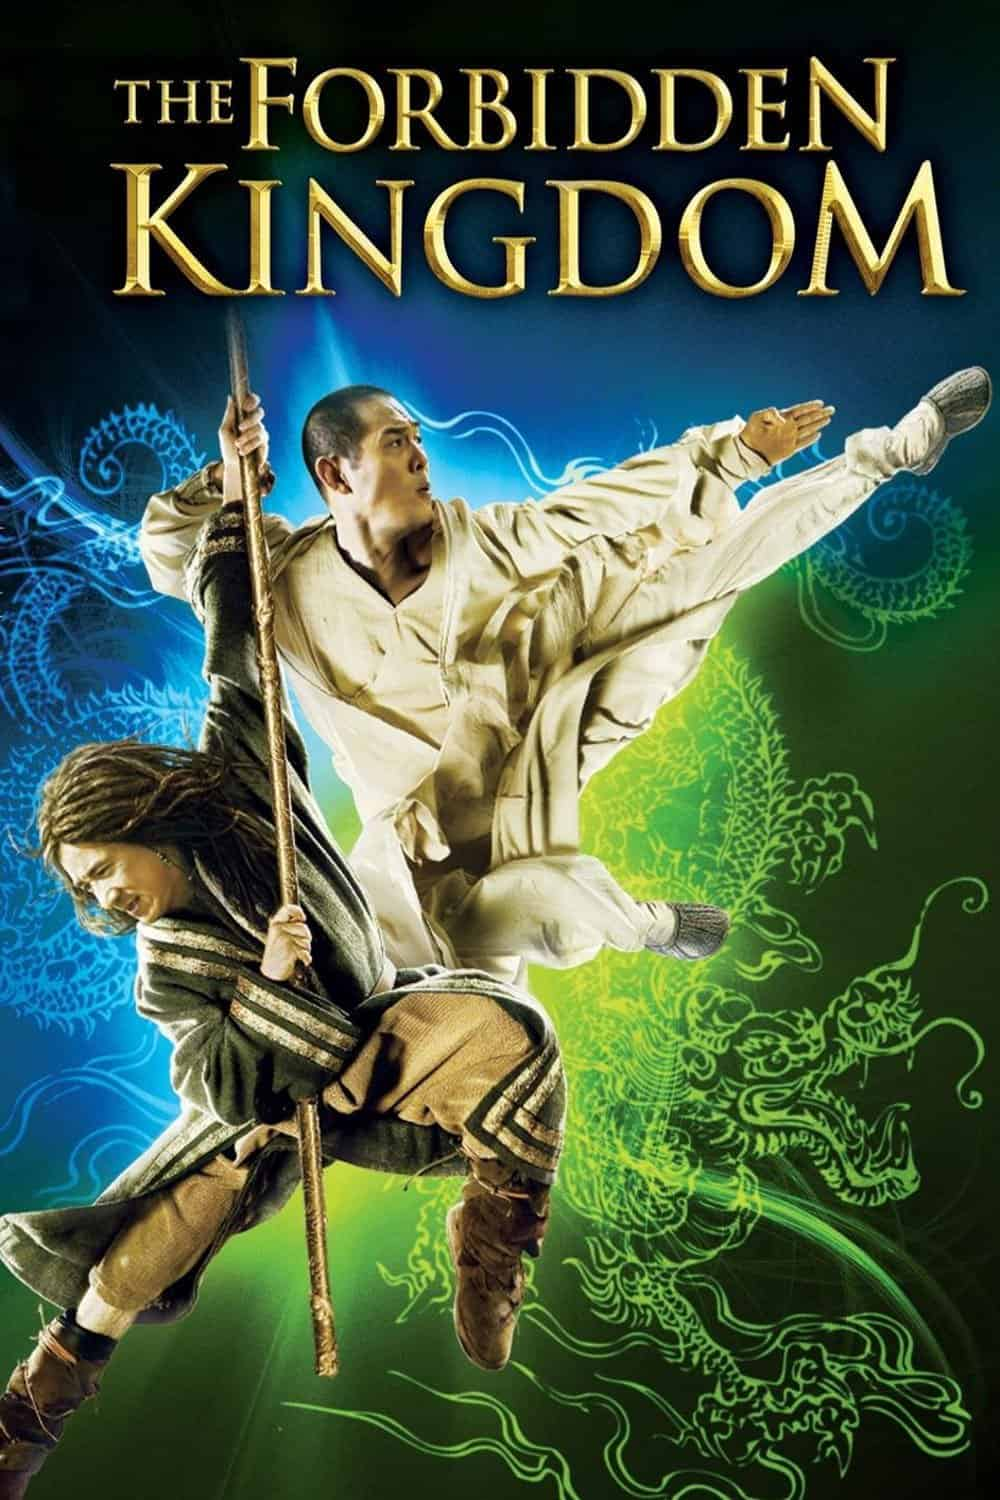 The Forbidden Kingdom, 2008